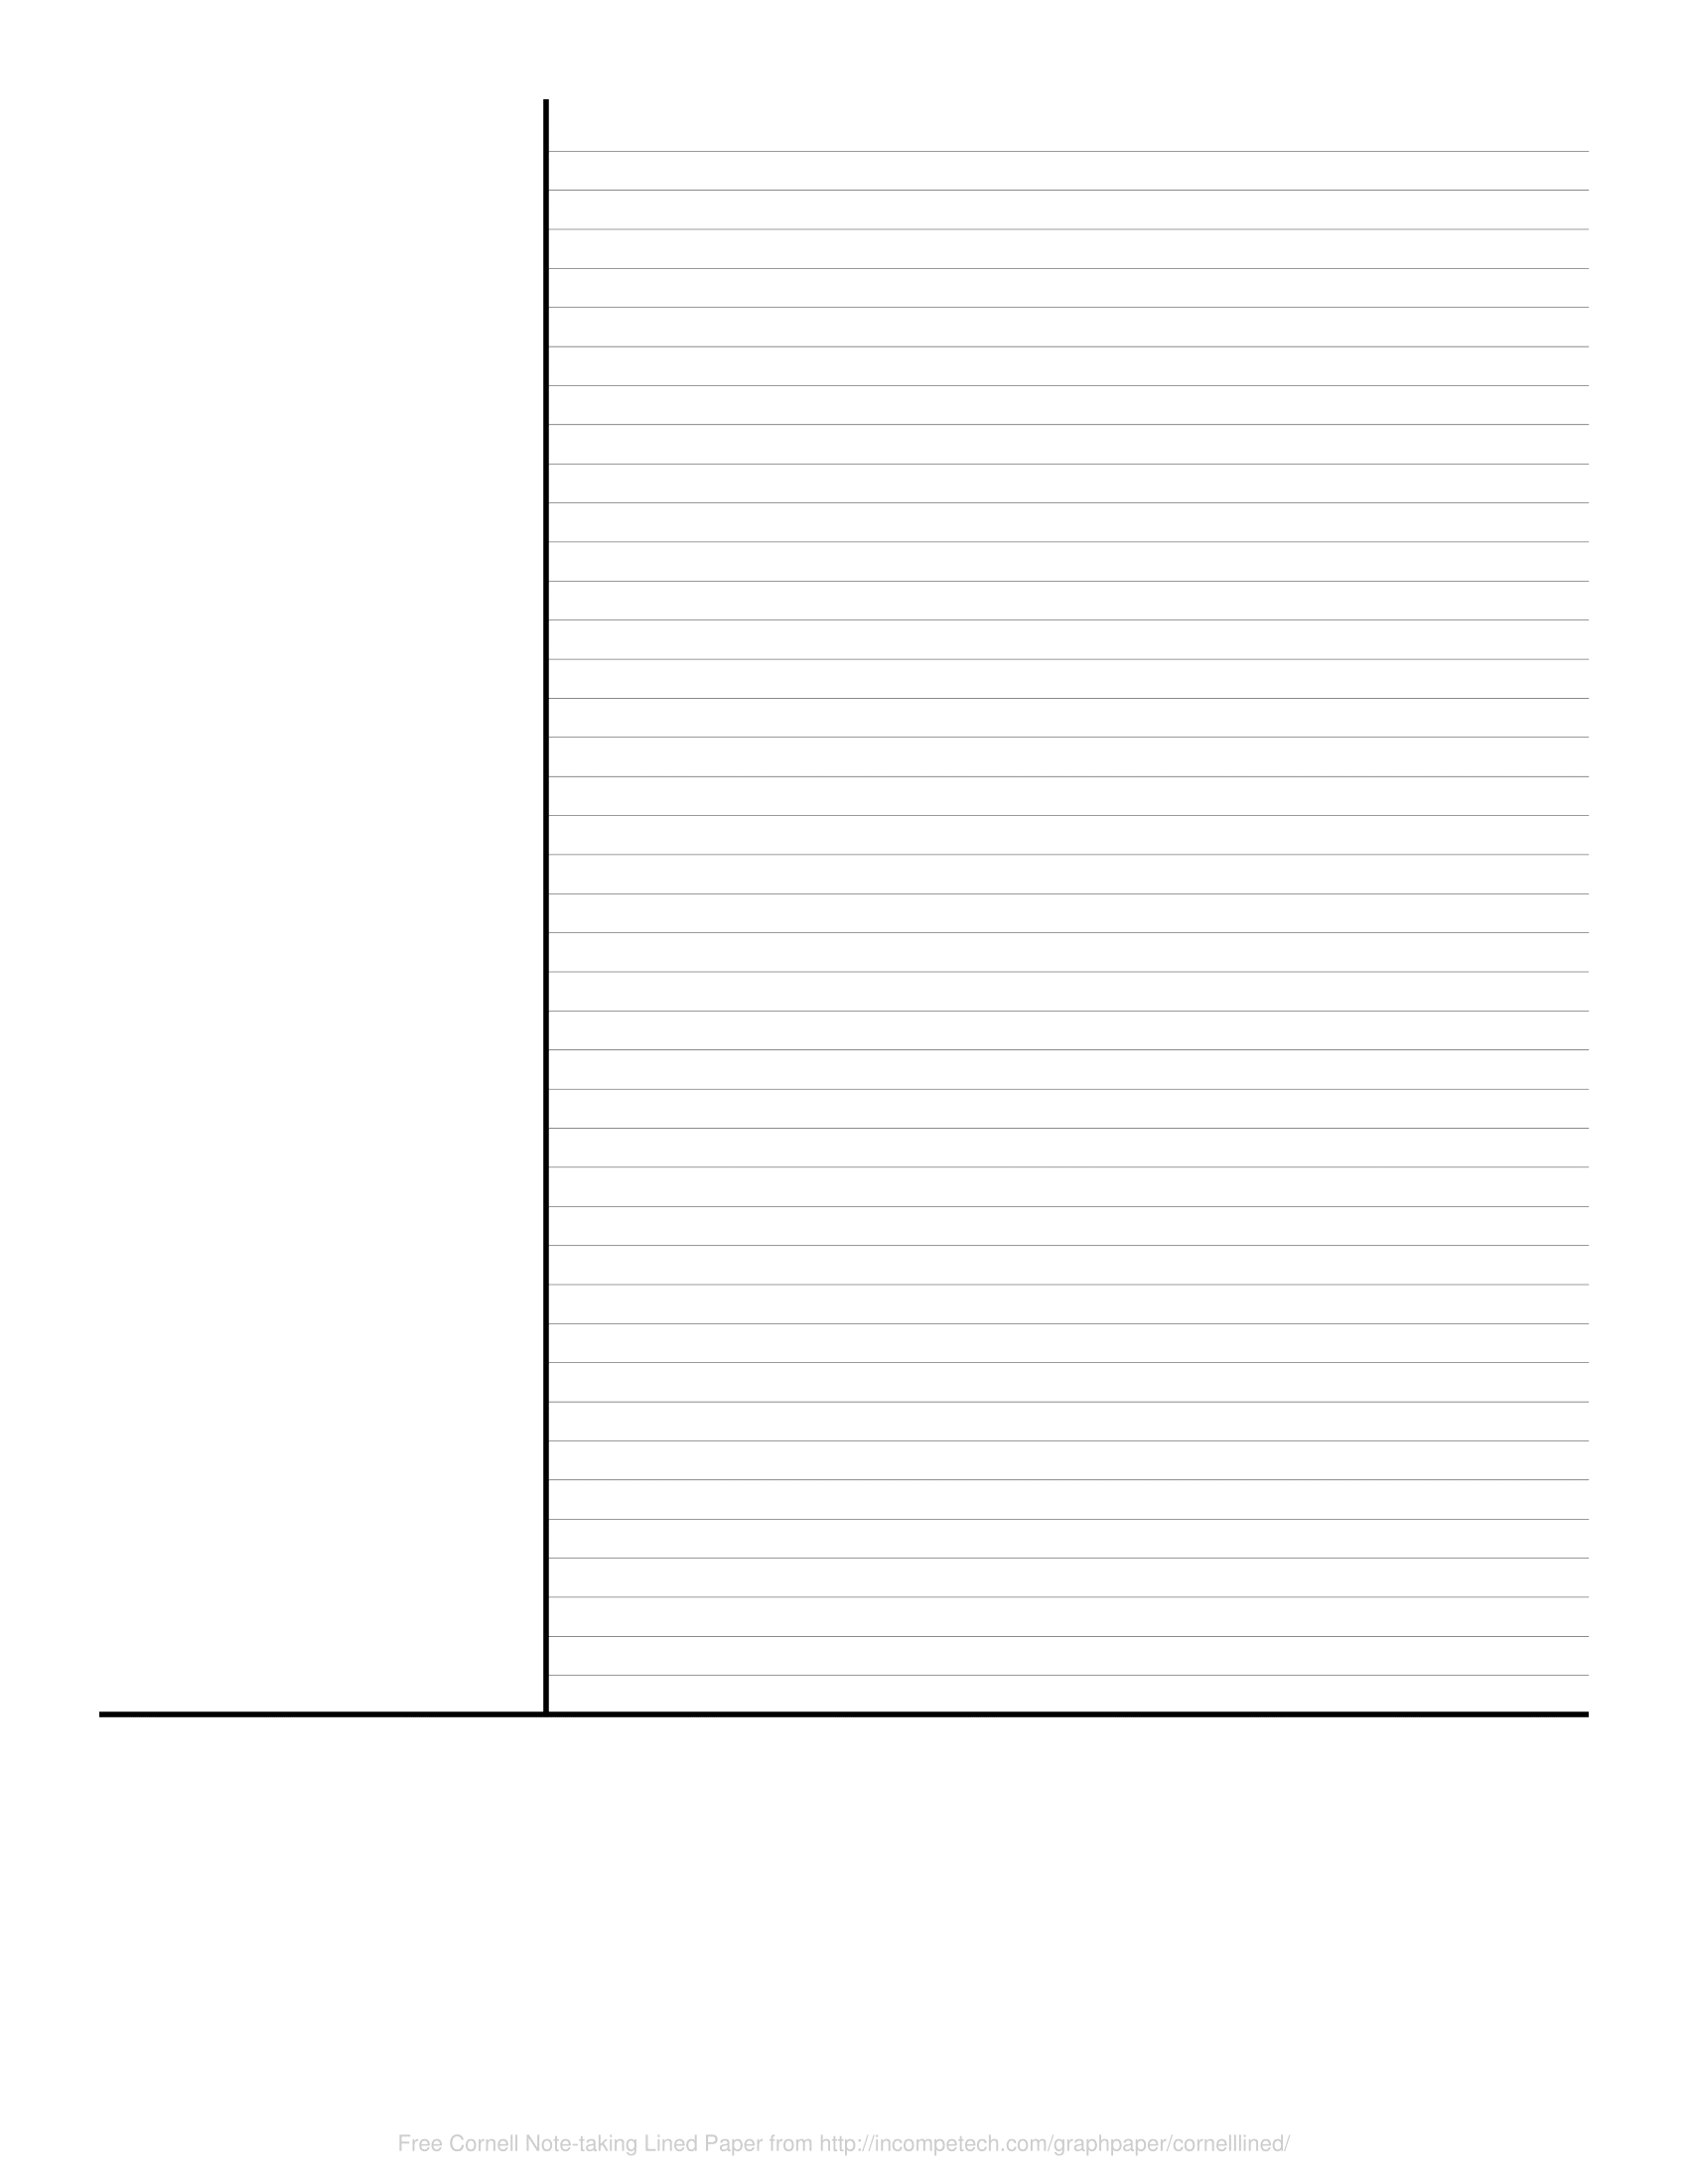 Free Online Graph Paper Cornell Note Taking Lined